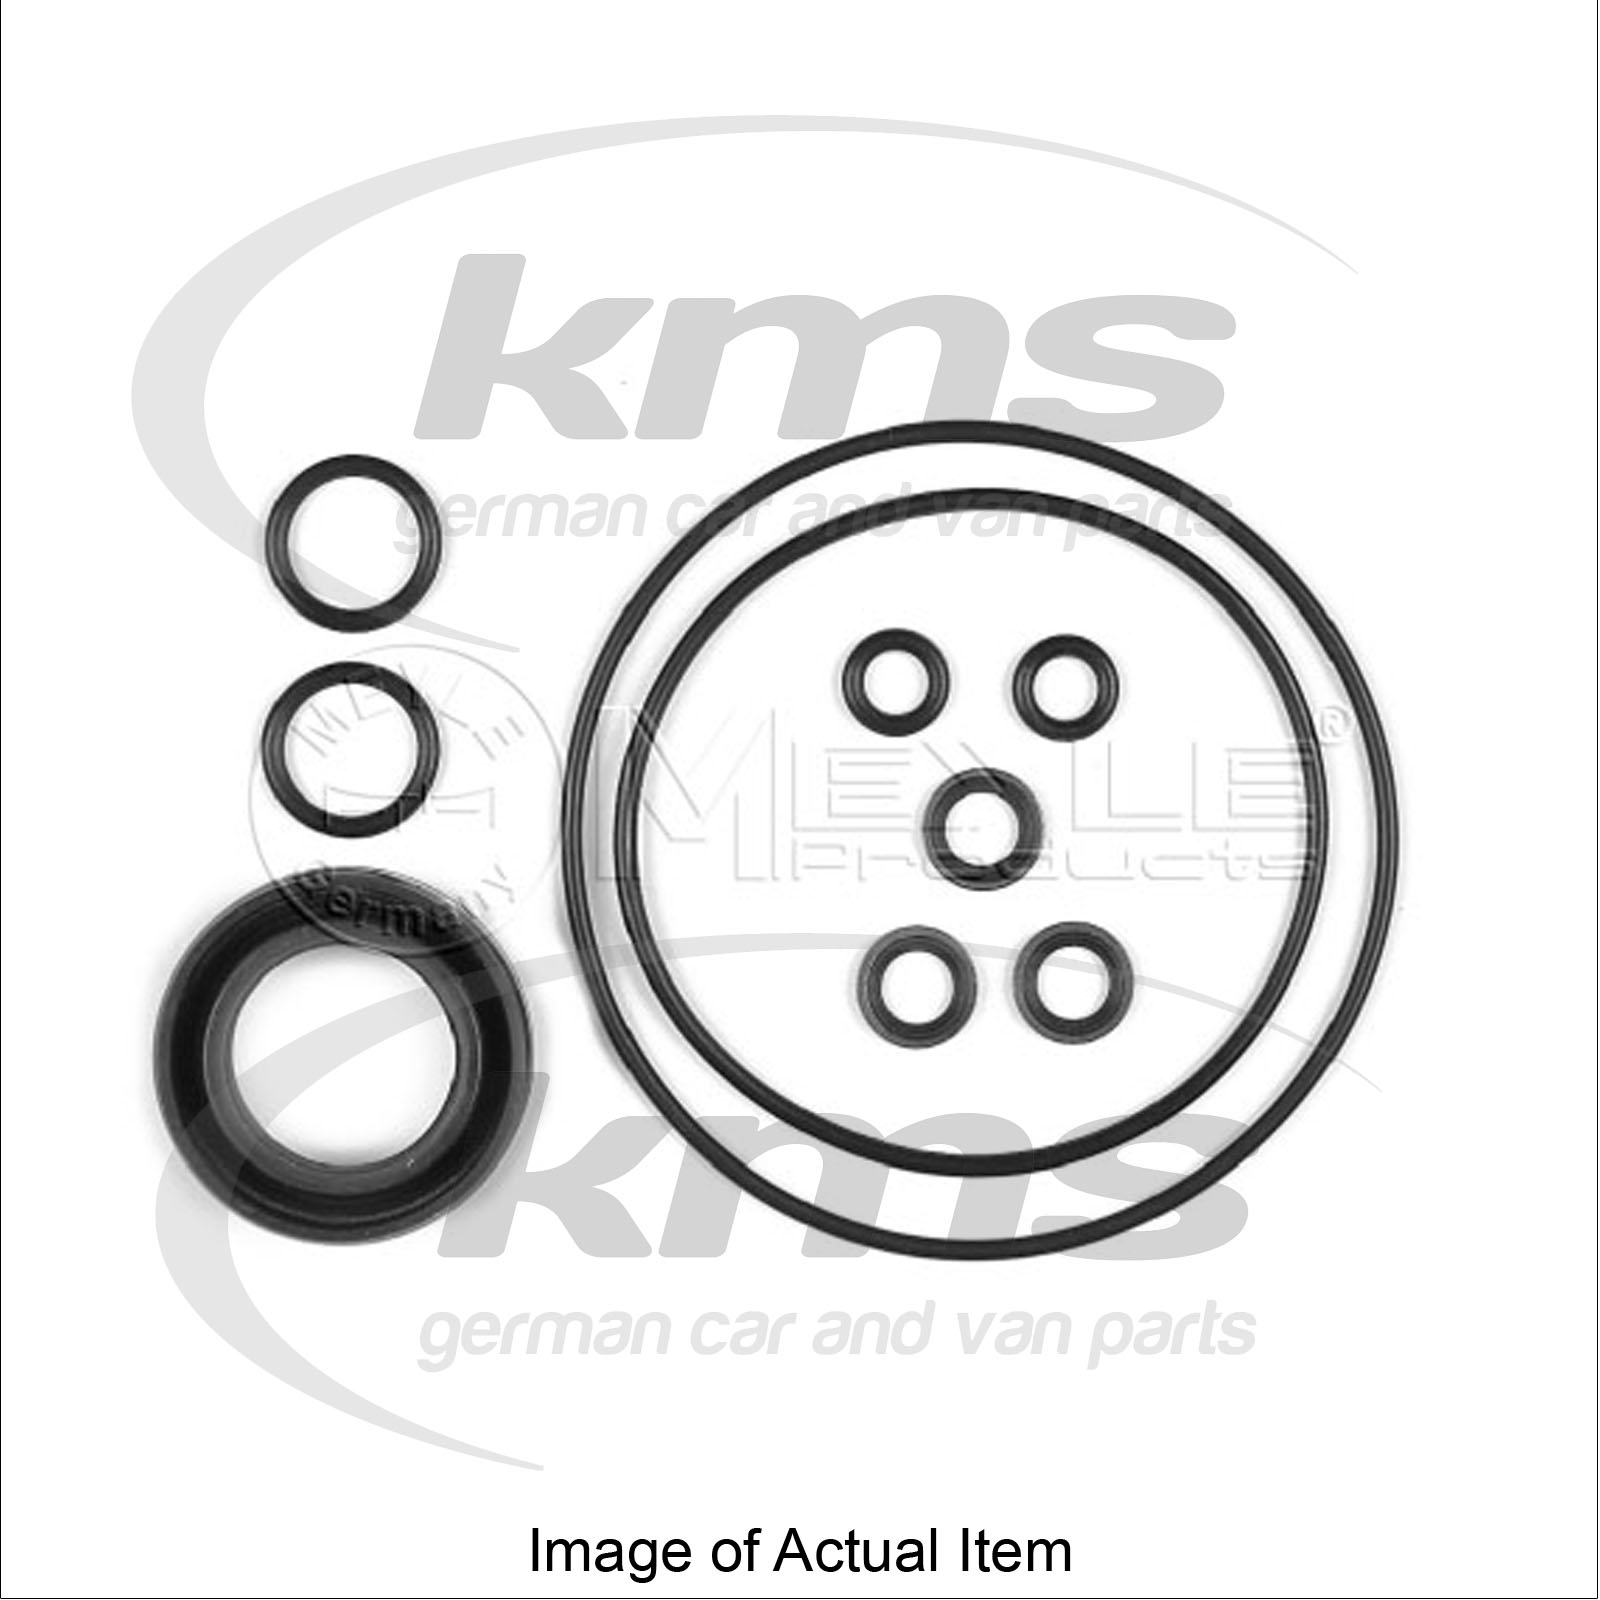 GASKET SET For HYDRAULIC PUMP MERCEDES S-CLASS (W126) 300